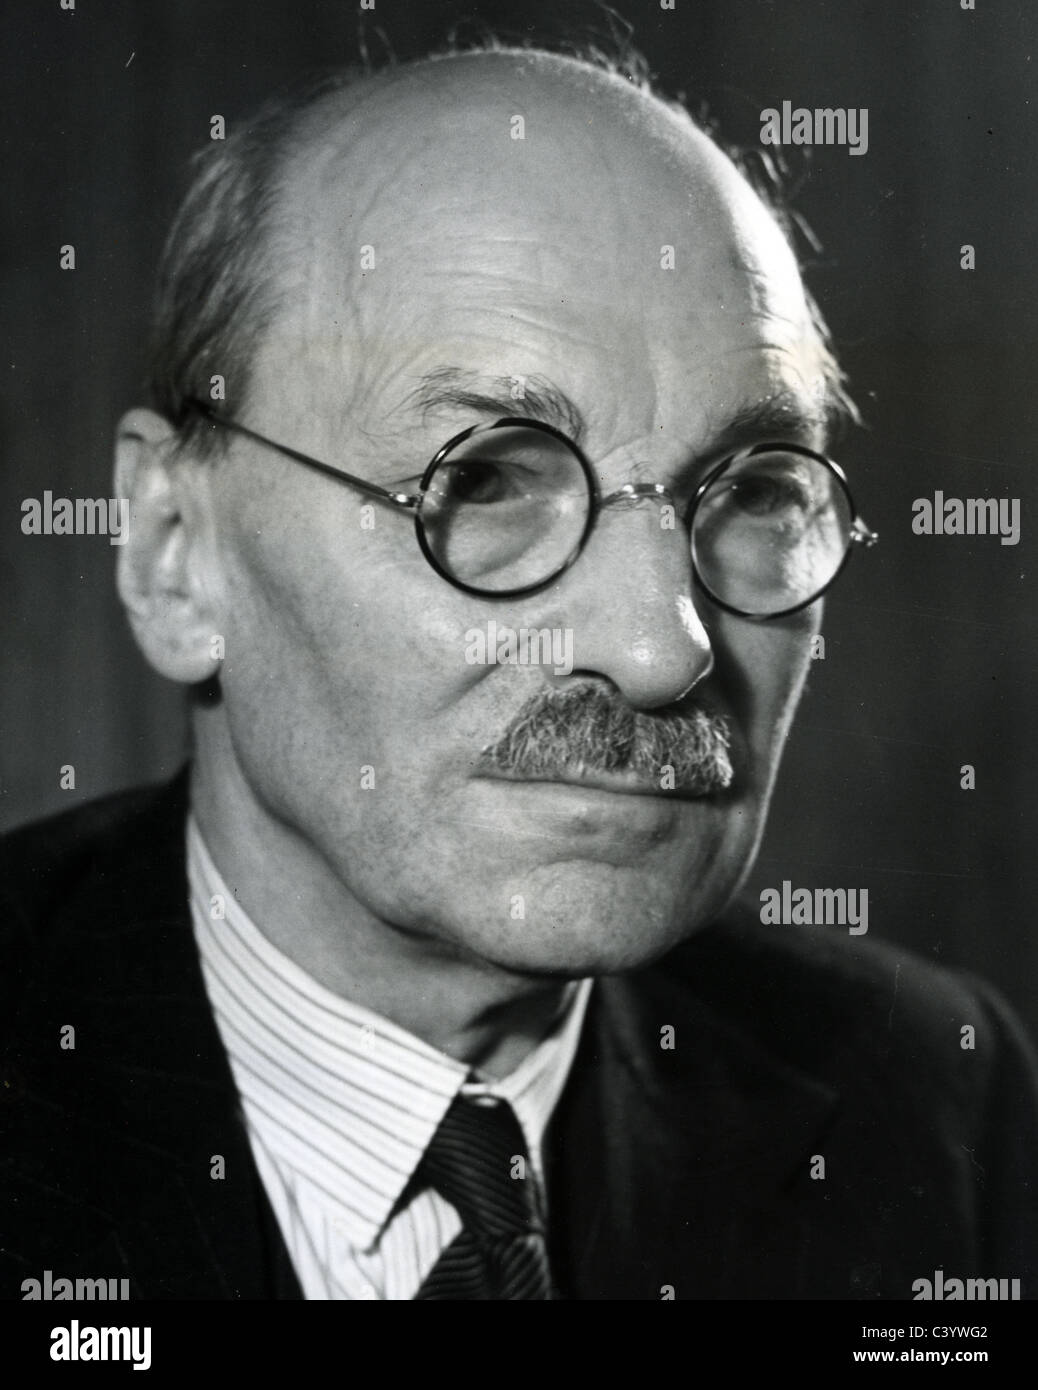 CLEMENT ATTLEE (1883-1967) as British Labour Prime Minister in 1946 - Stock Image